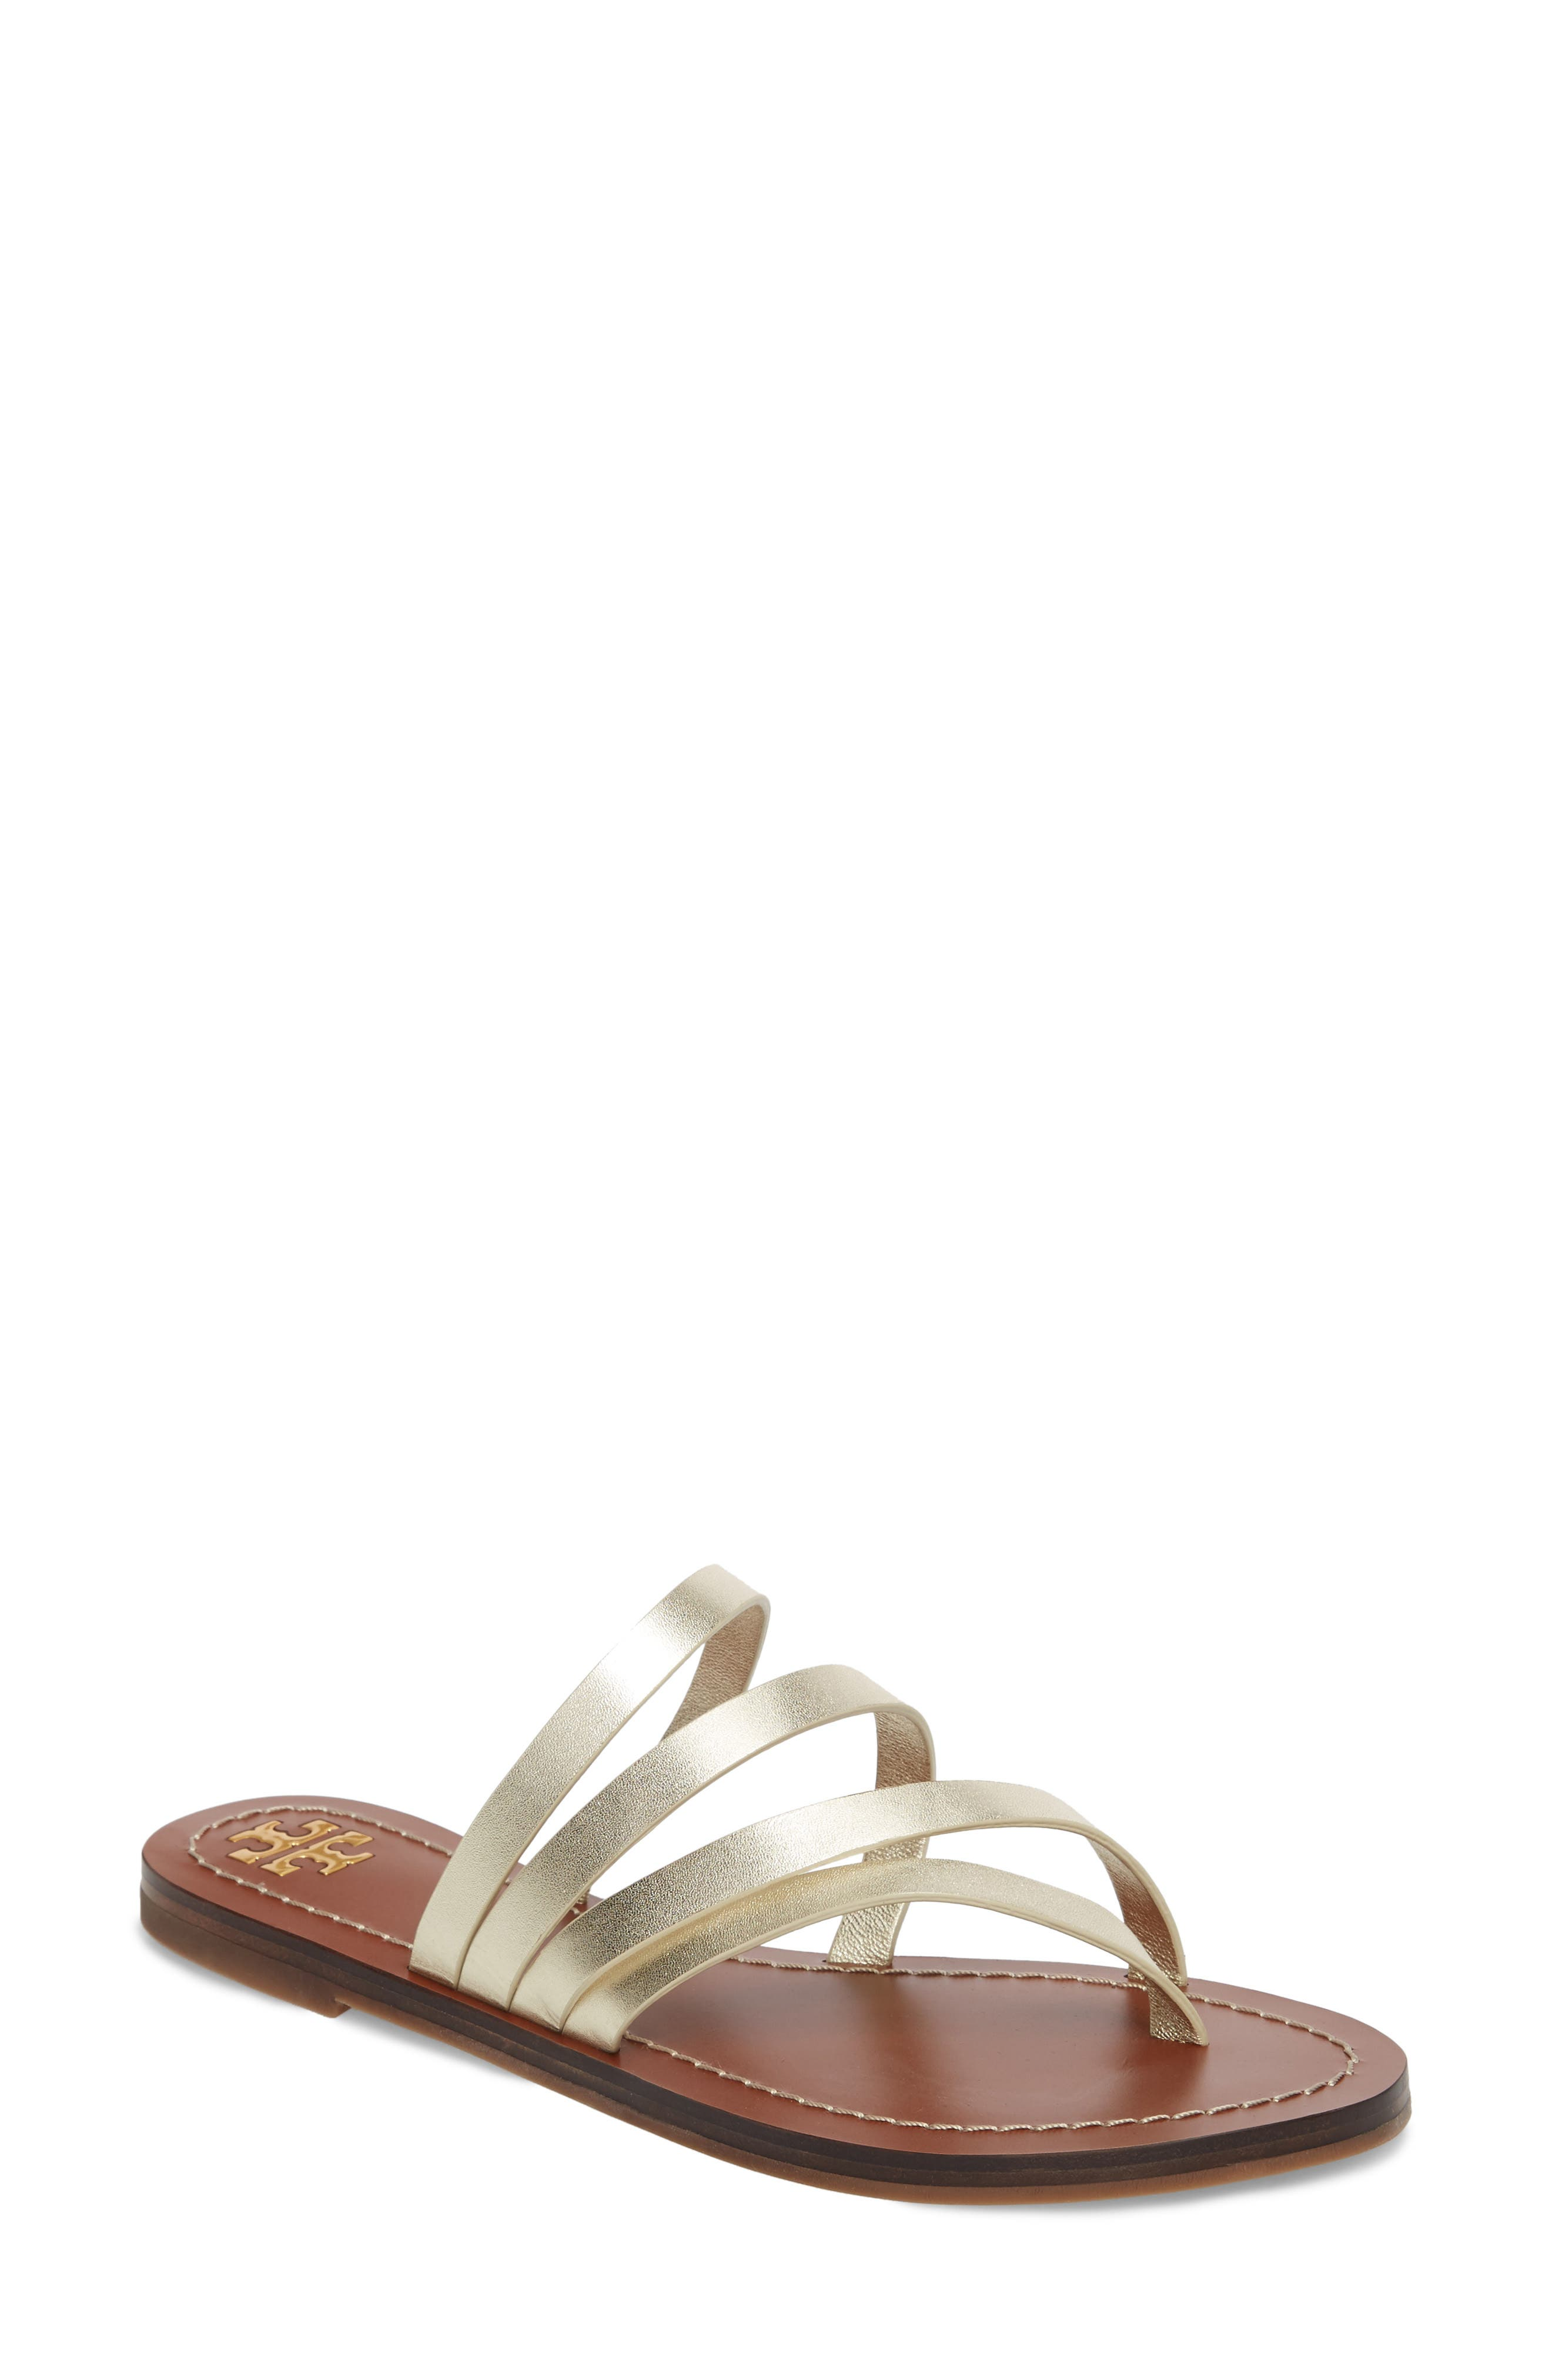 Patos Sandal,                             Main thumbnail 1, color,                             Spark Gold